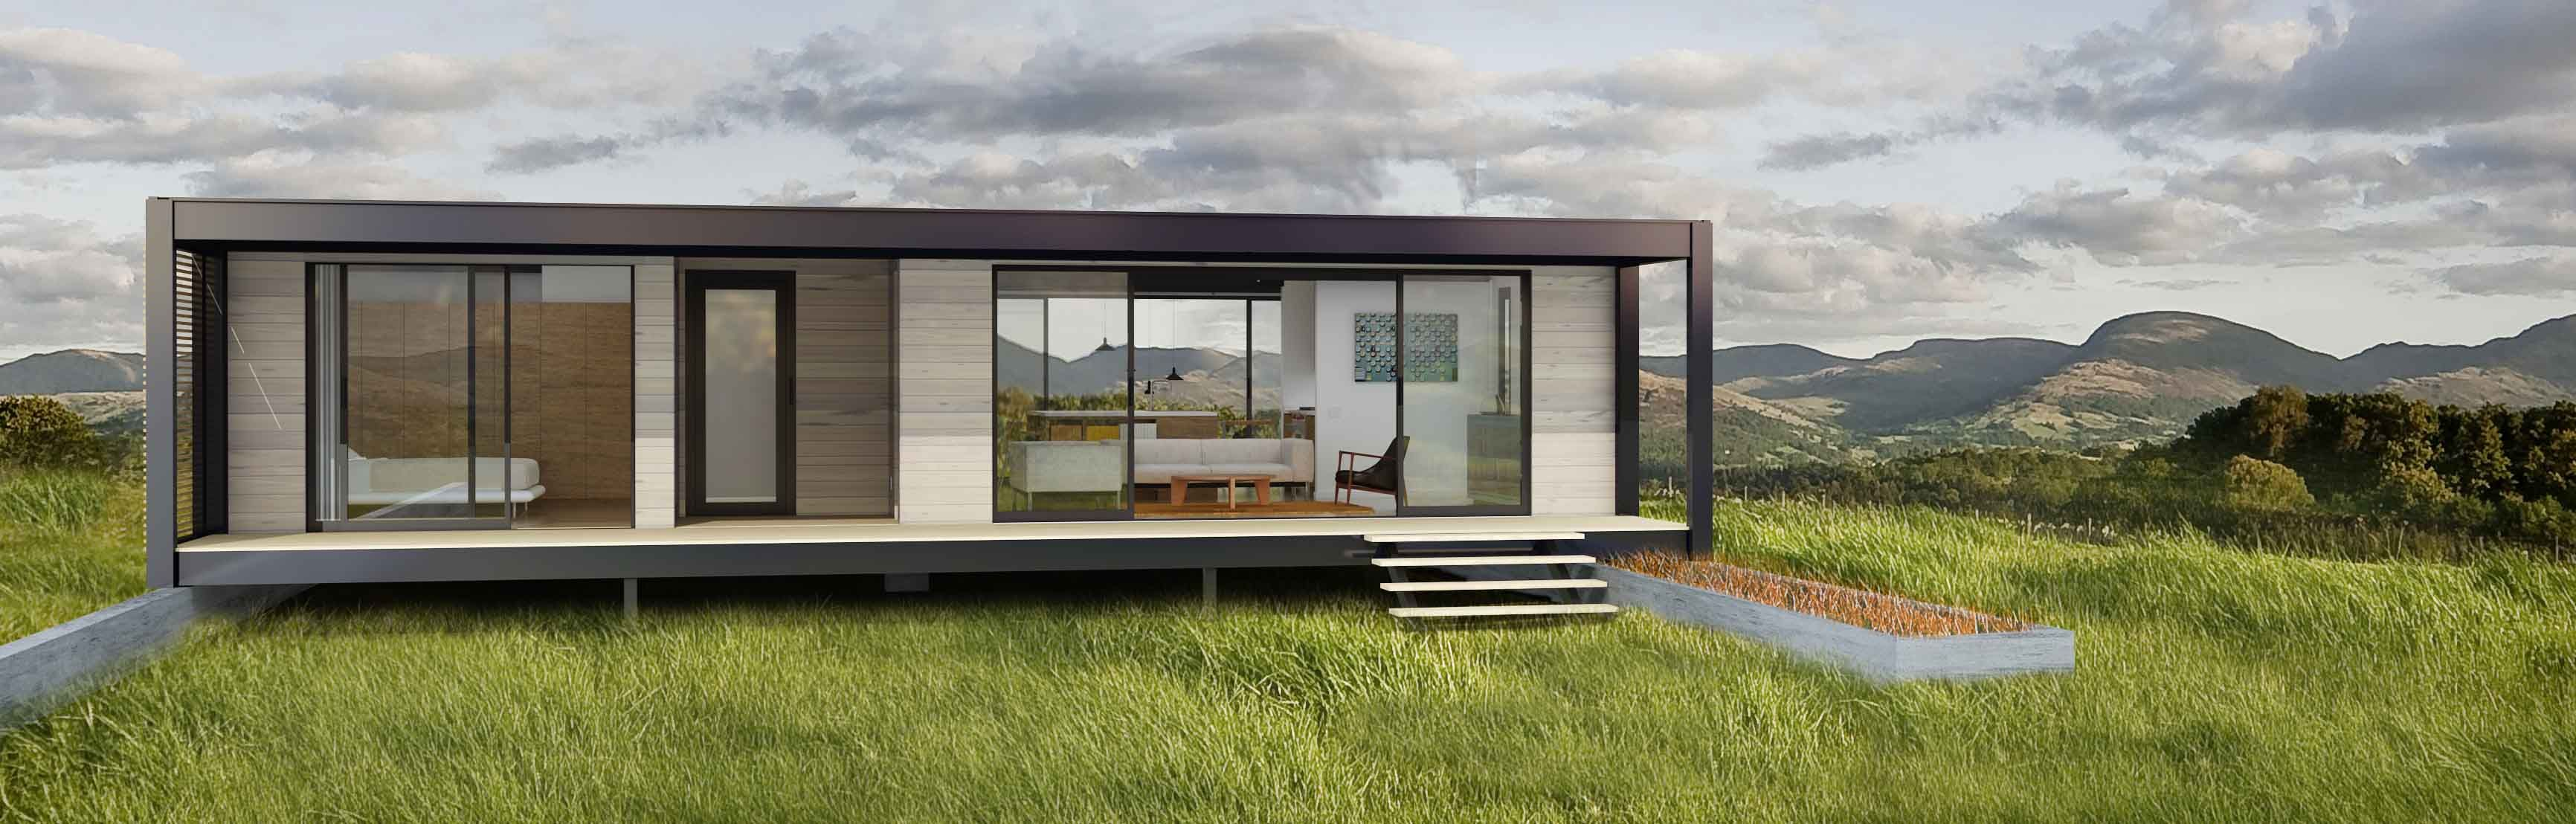 The excellent prefab homes affordable awesome ideas for for Portable home designs